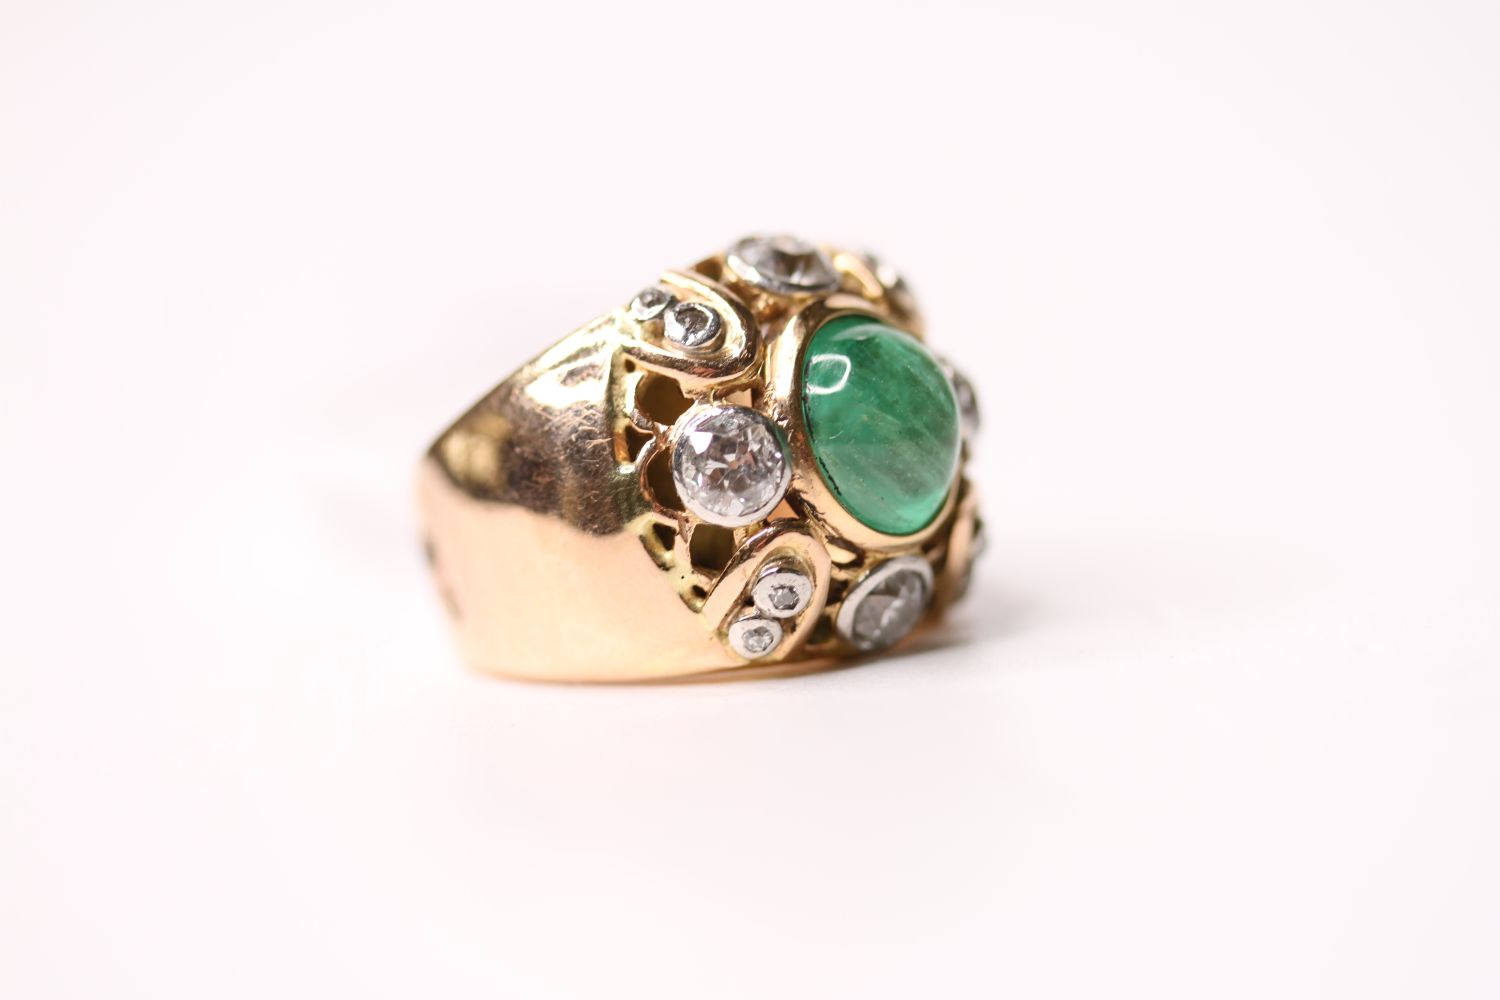 Emerald & Diamond Ring, set with a central cabochon cut emerald, surrounded by diamonds, french - Image 2 of 4